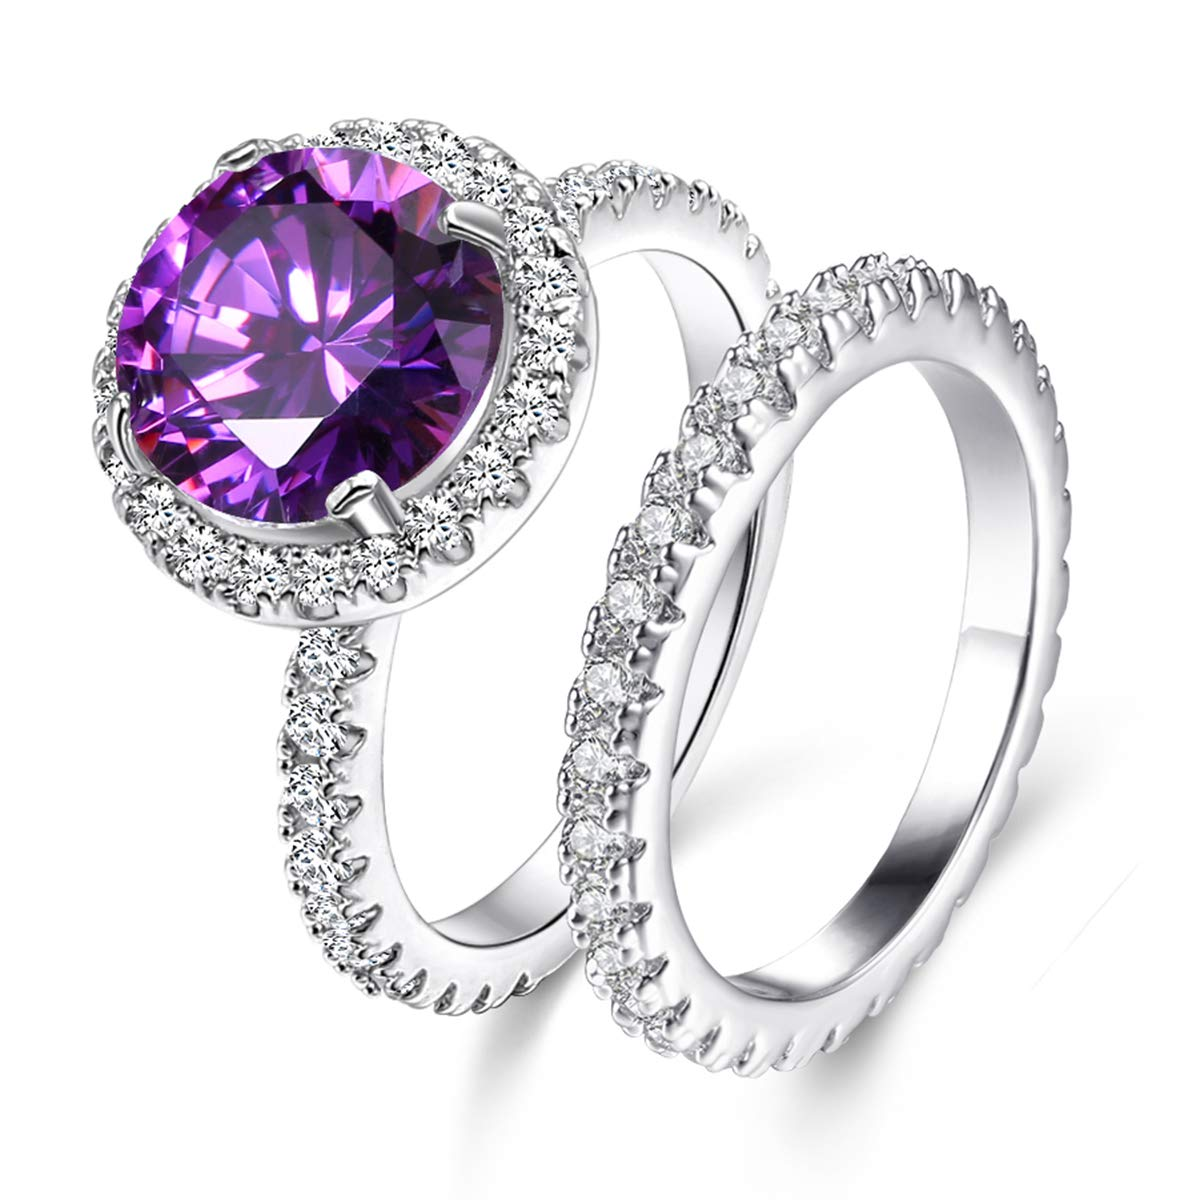 AAA Cubic Zirconia Rhodium Plated Rings for Women Elegant Purple Ring Party Jewelry Mother 's Day Gift Size 5-10 Jiangyue JWZ2324_Purple